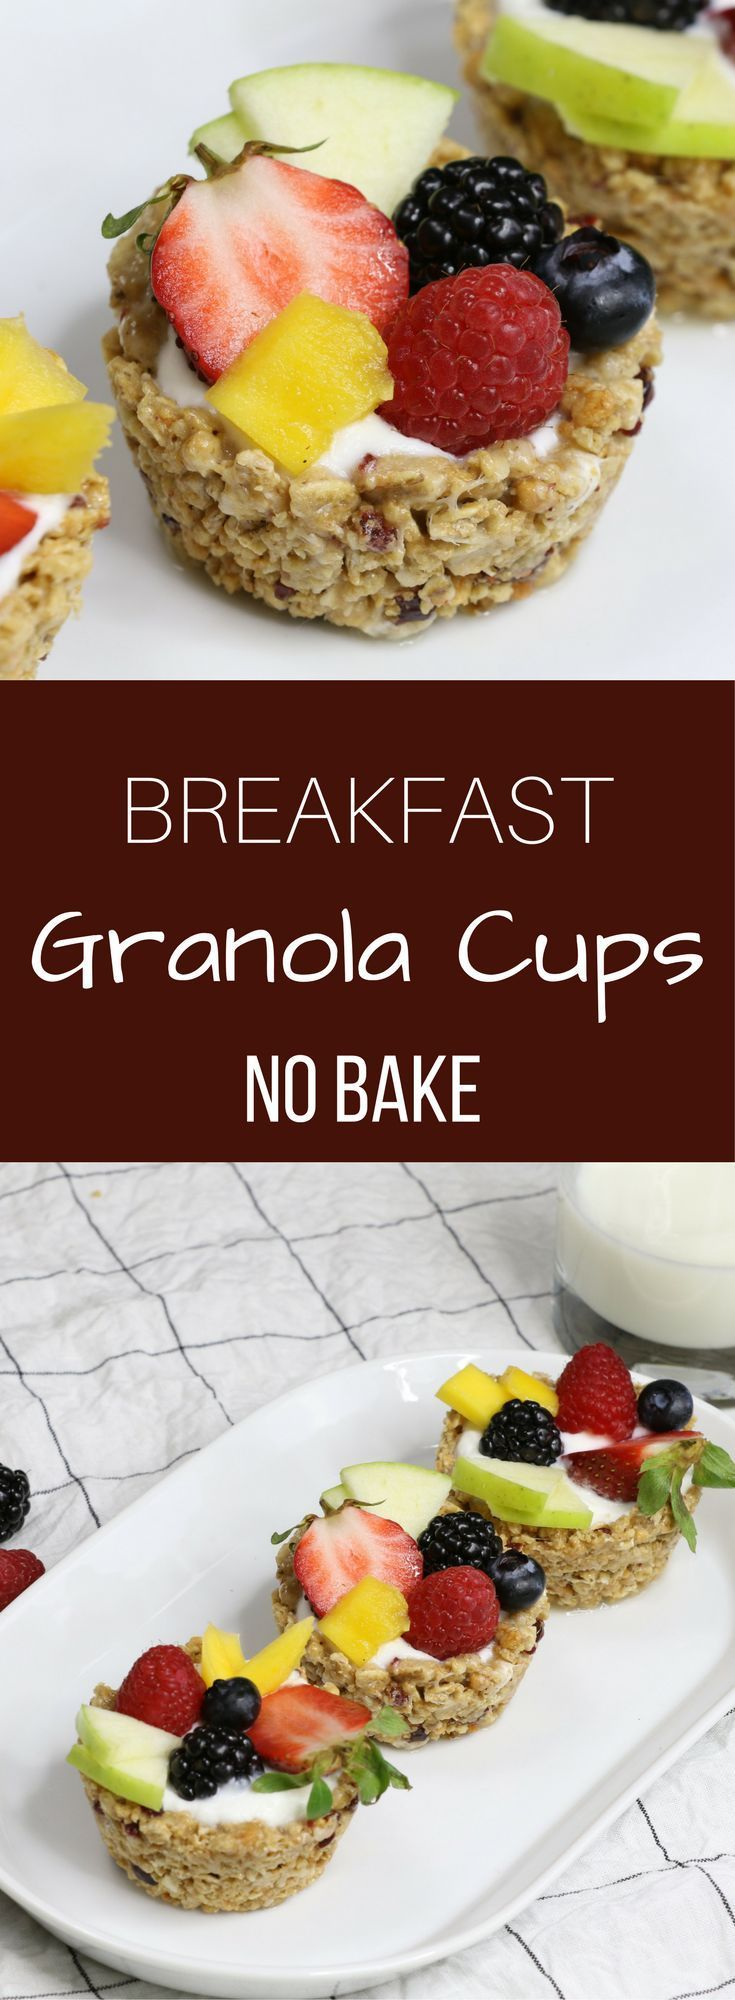 Breakfast Granola Cups recipe is a quick and easy, no bake vegetarian recipe. The cups themselves use only 3 ingredients.Makes a great make ahead breakfast.